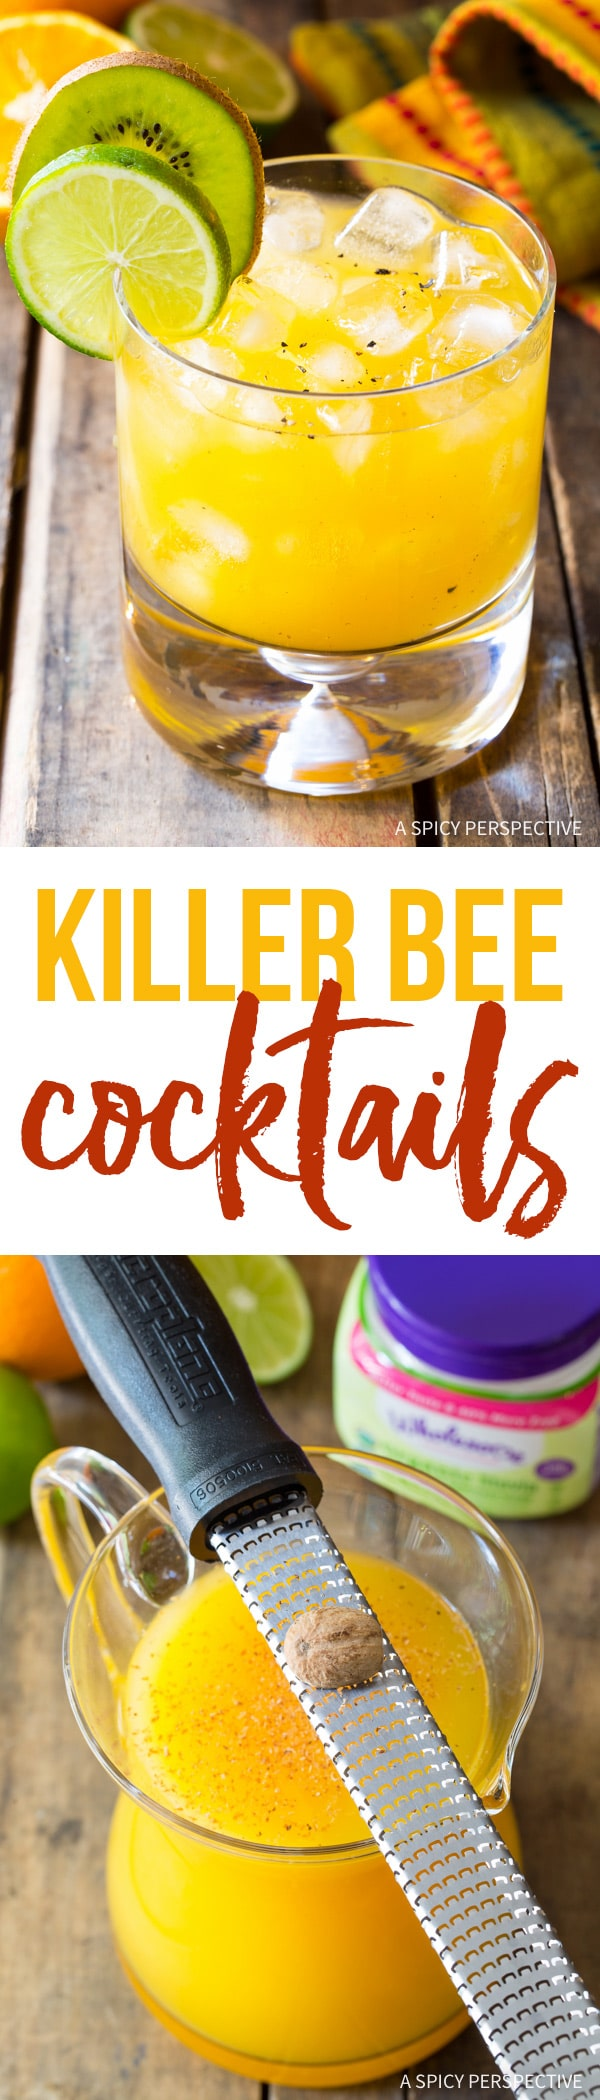 Killer Bee Cocktail With Black Pepper & Nutmeg Recipe ...